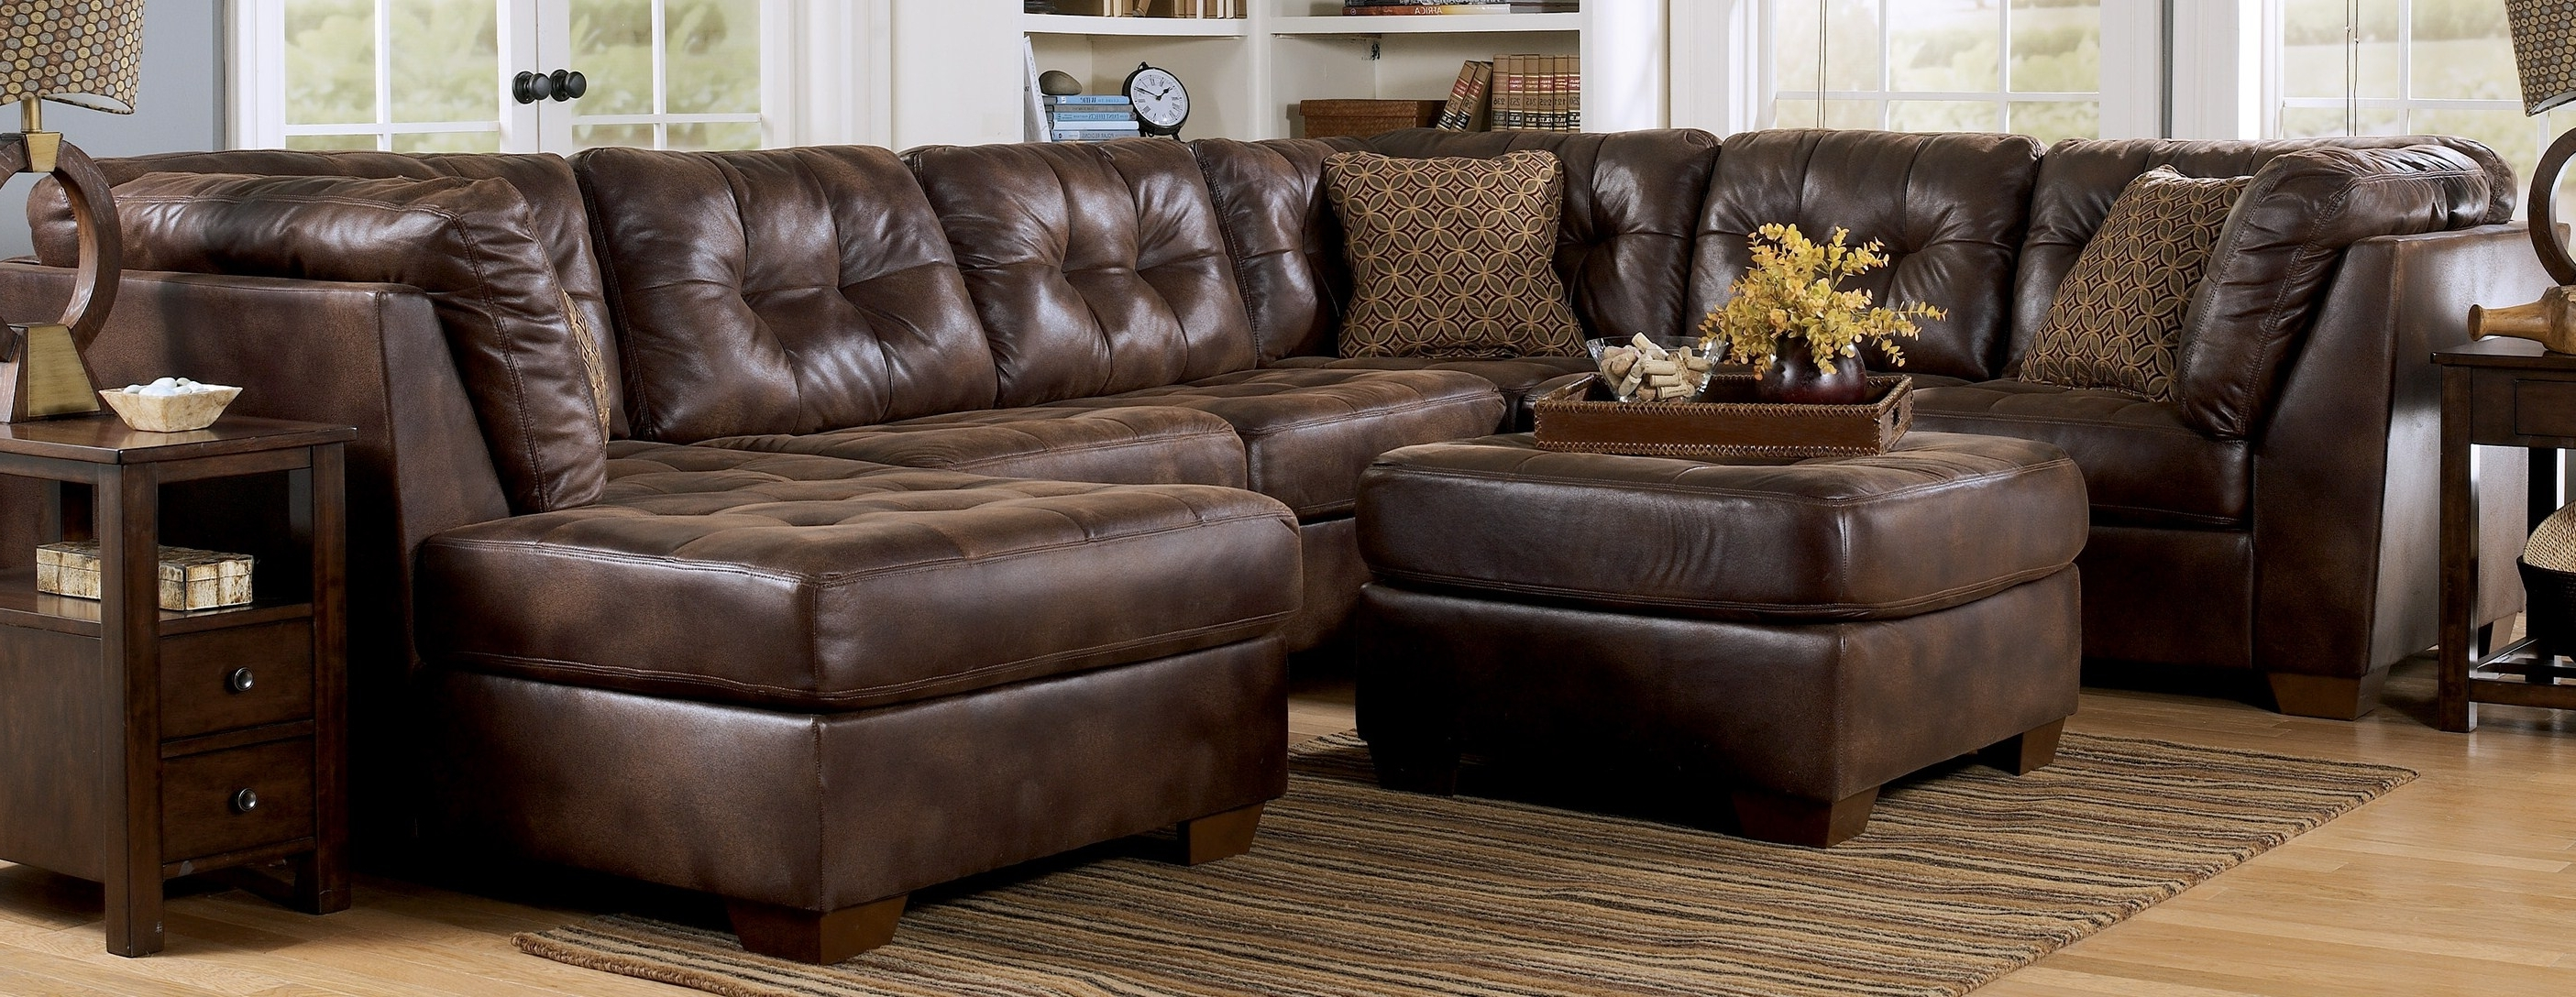 Widely Used Luxury Leather Sectional Sleeper Sofa With Chaise 34 Contemporary Pertaining To Leather Sectional Sleeper Sofas With Chaise (View 15 of 15)